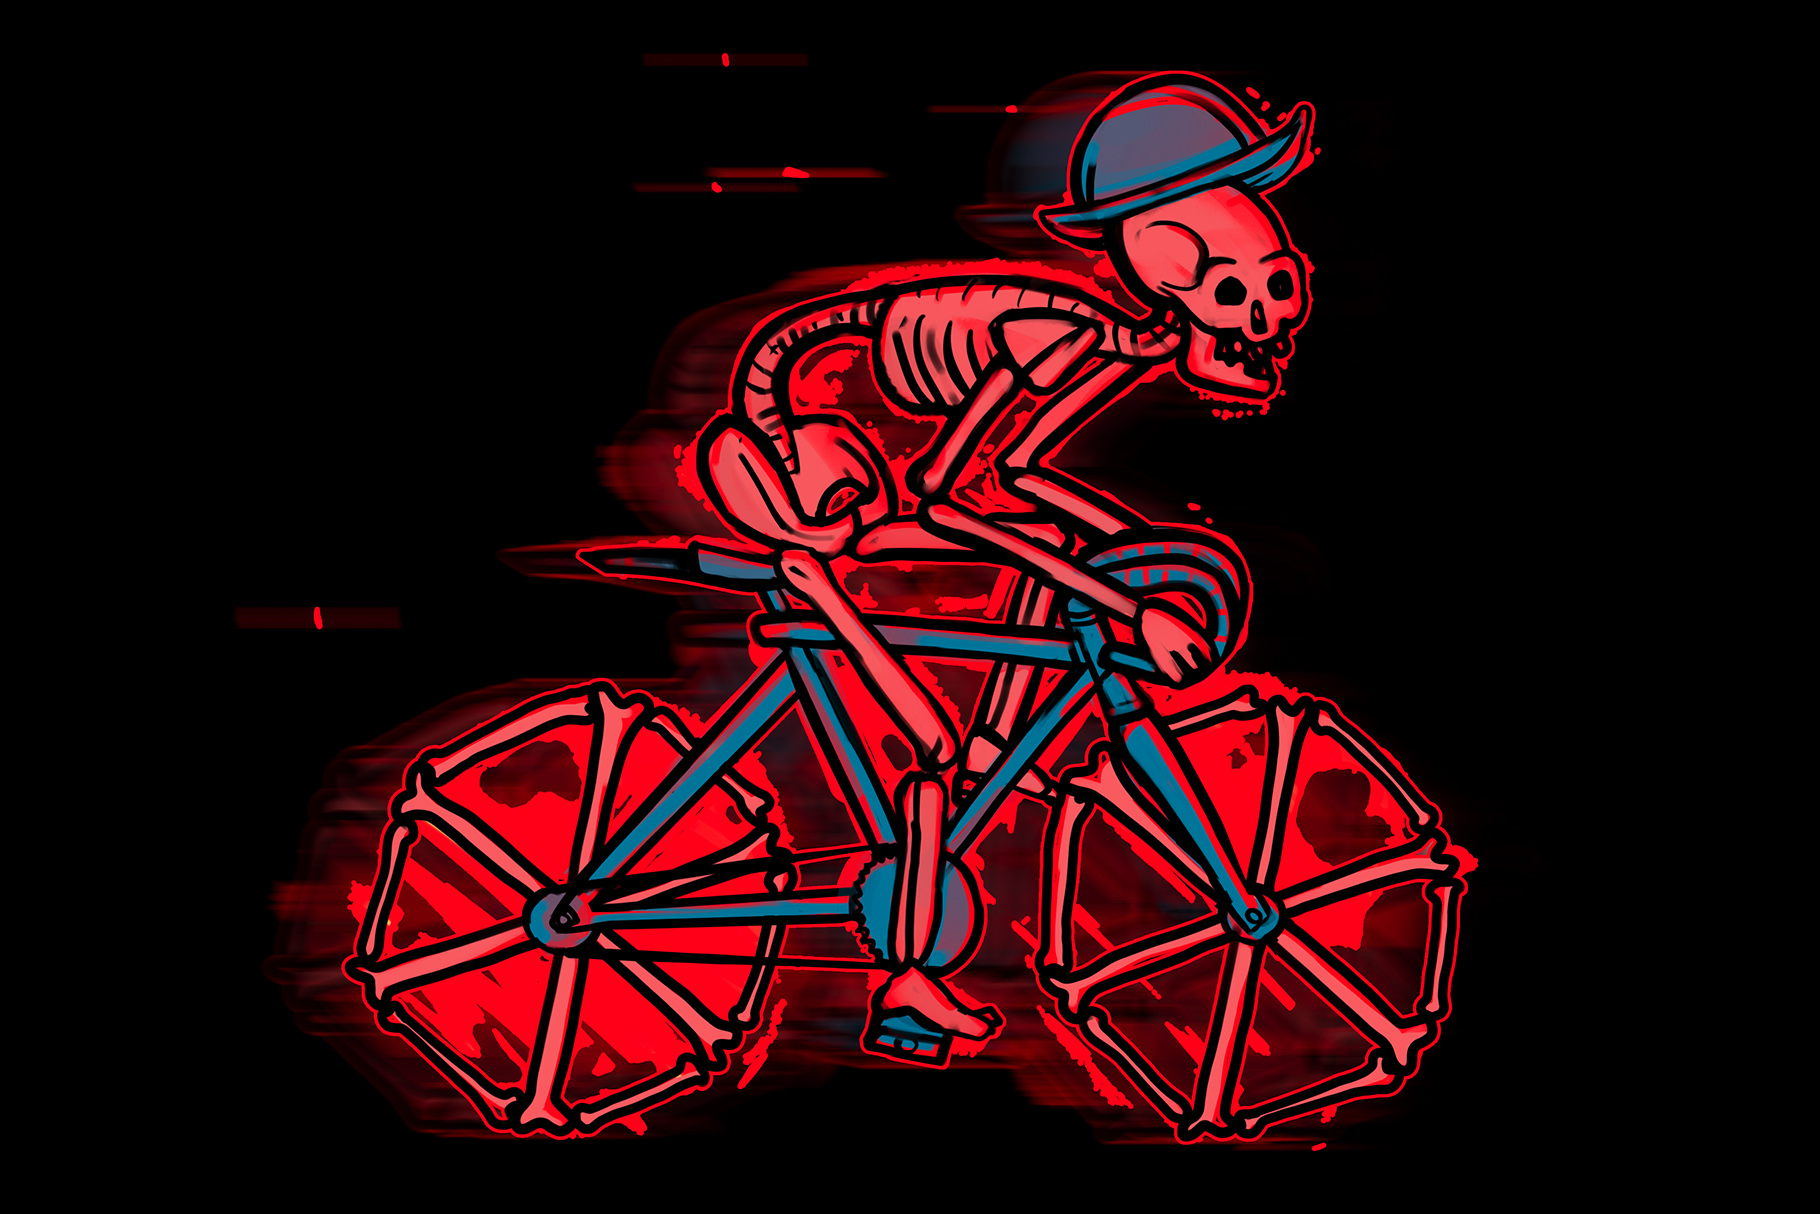 SKELETON BICYCLES example image 3